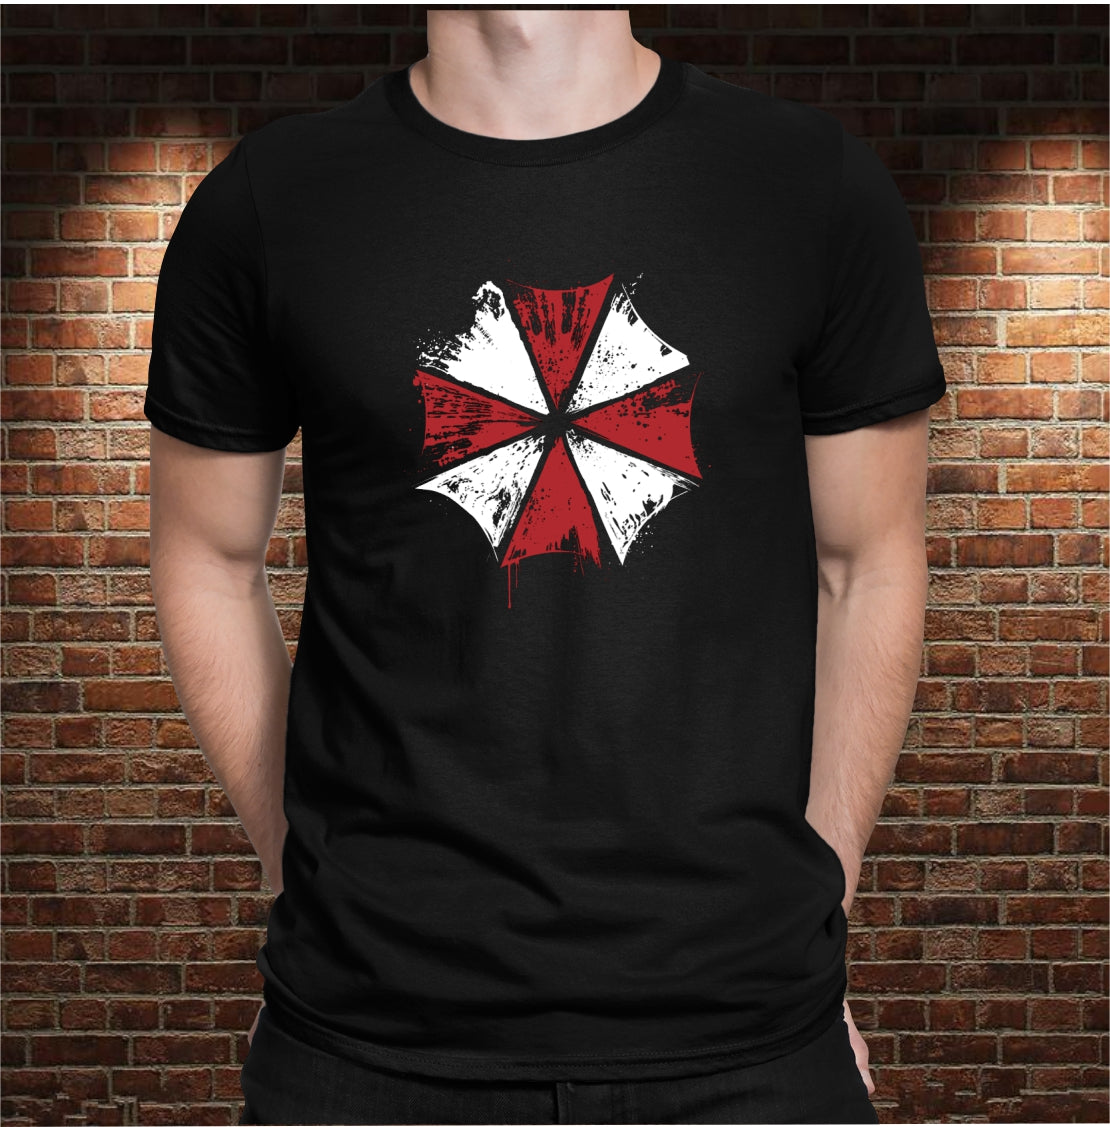 CAMISETA UMBRELLA CORPS